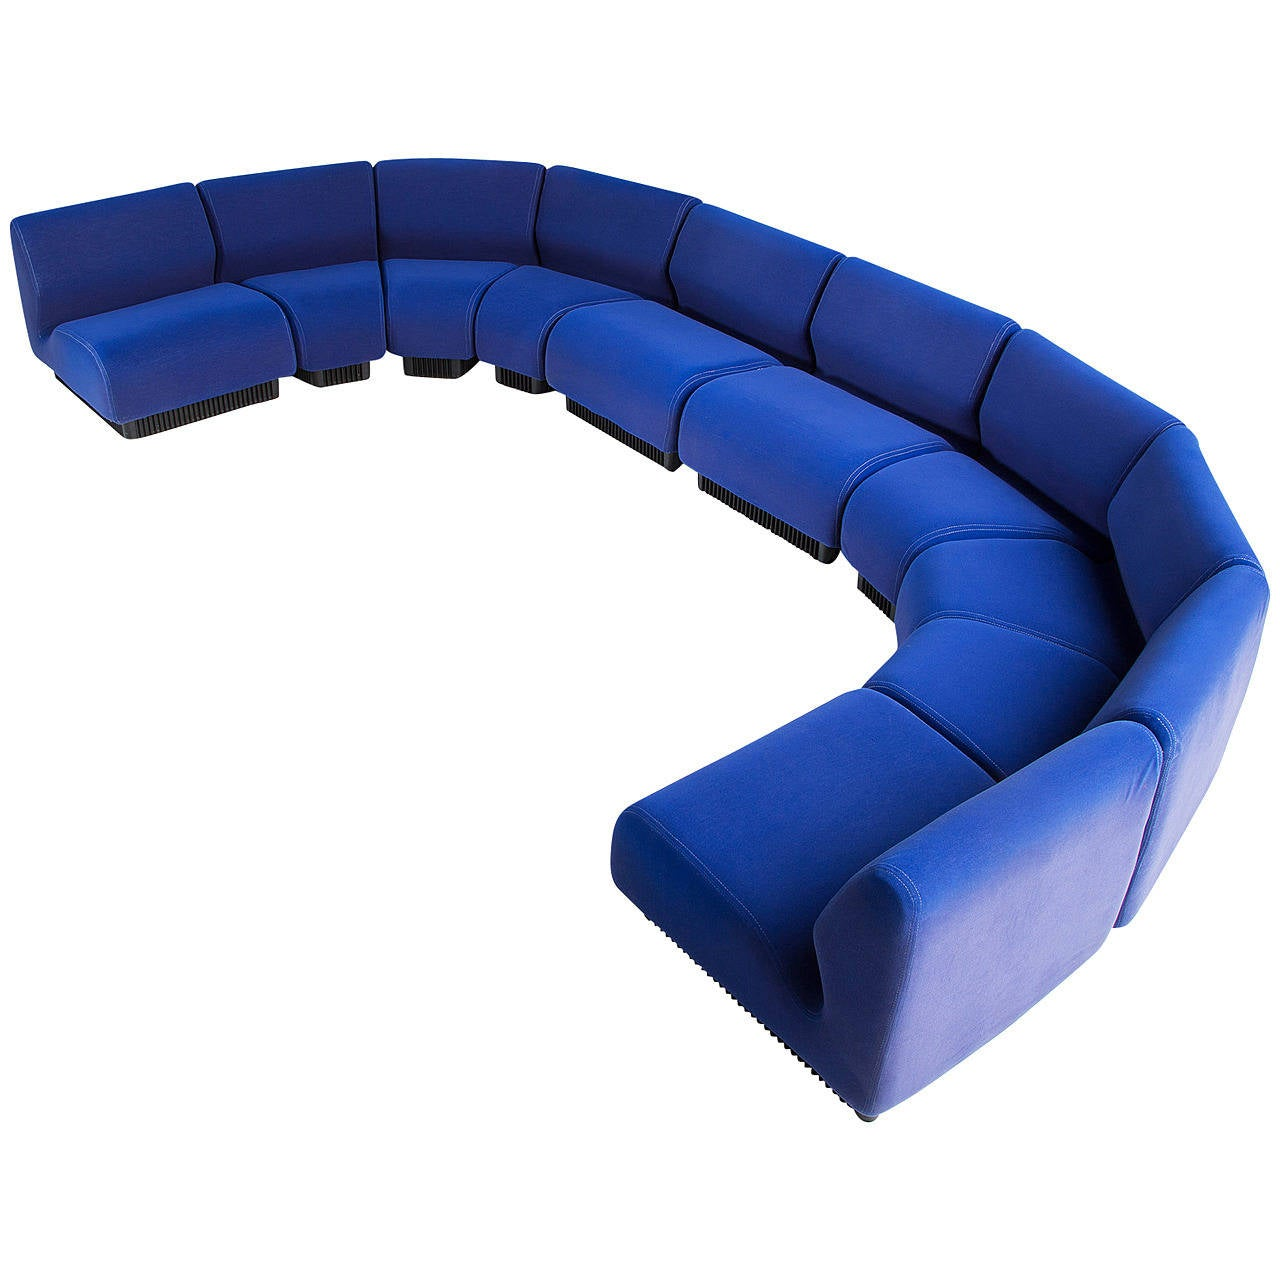 Large 10 Piece Sectional Quot Never Ending Sofa Quot By Don